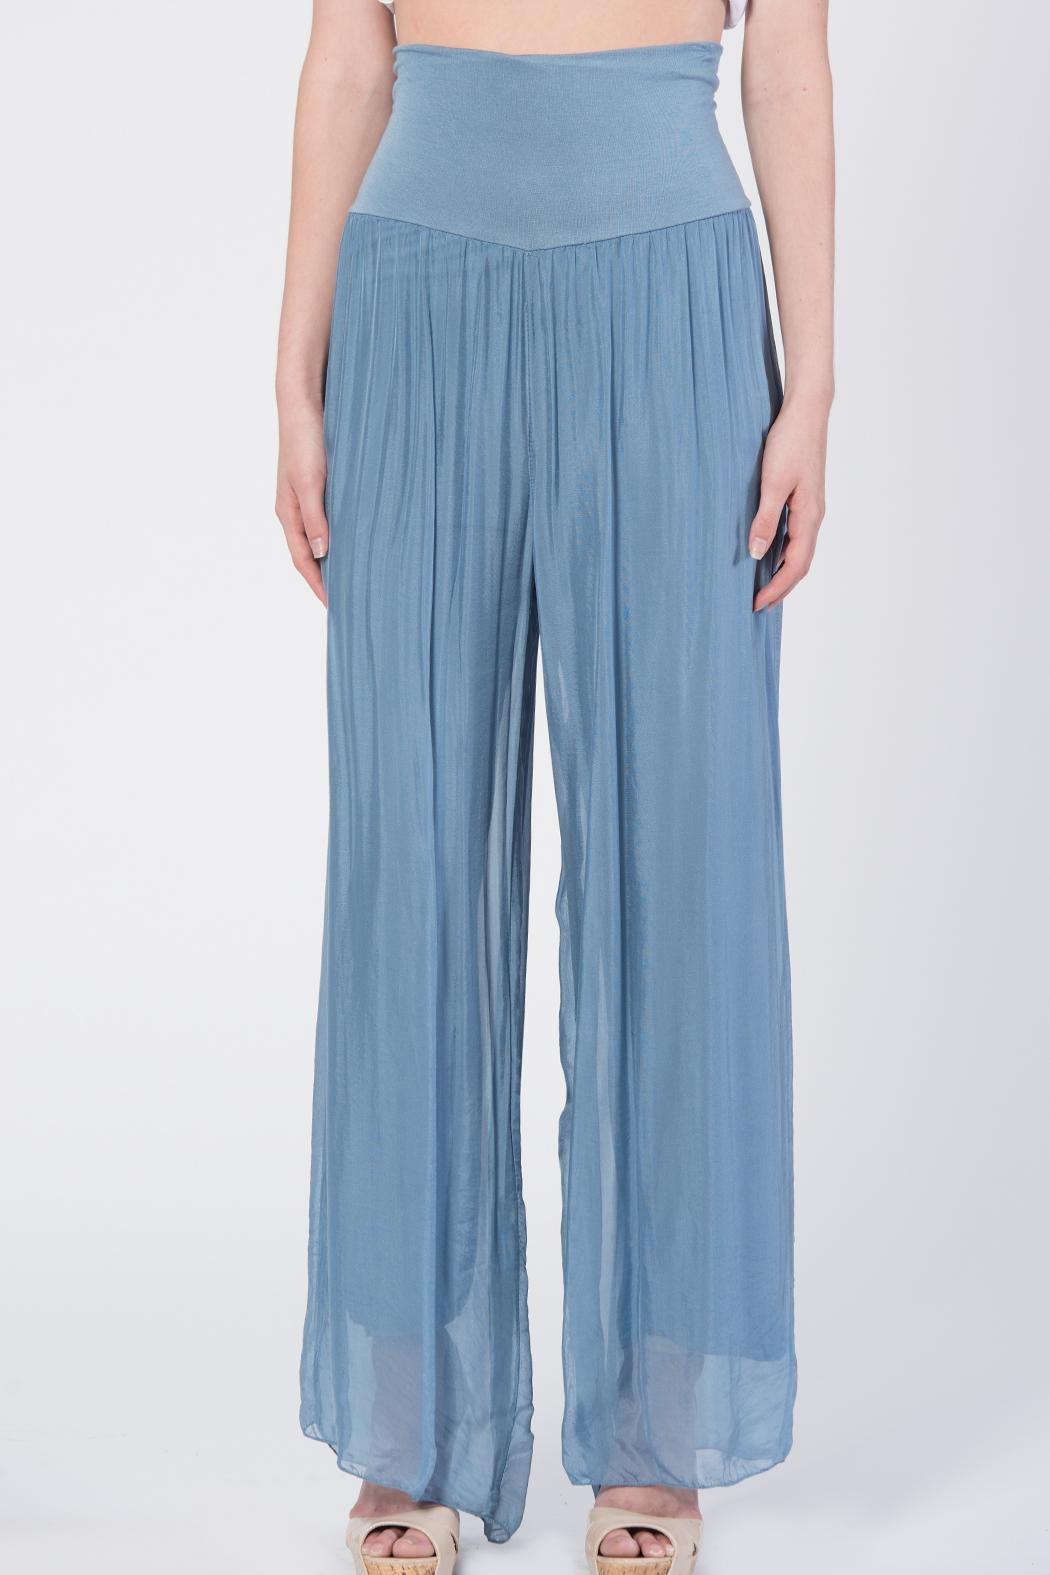 Catwalk Flowy Pleated Pants - Front Full Image